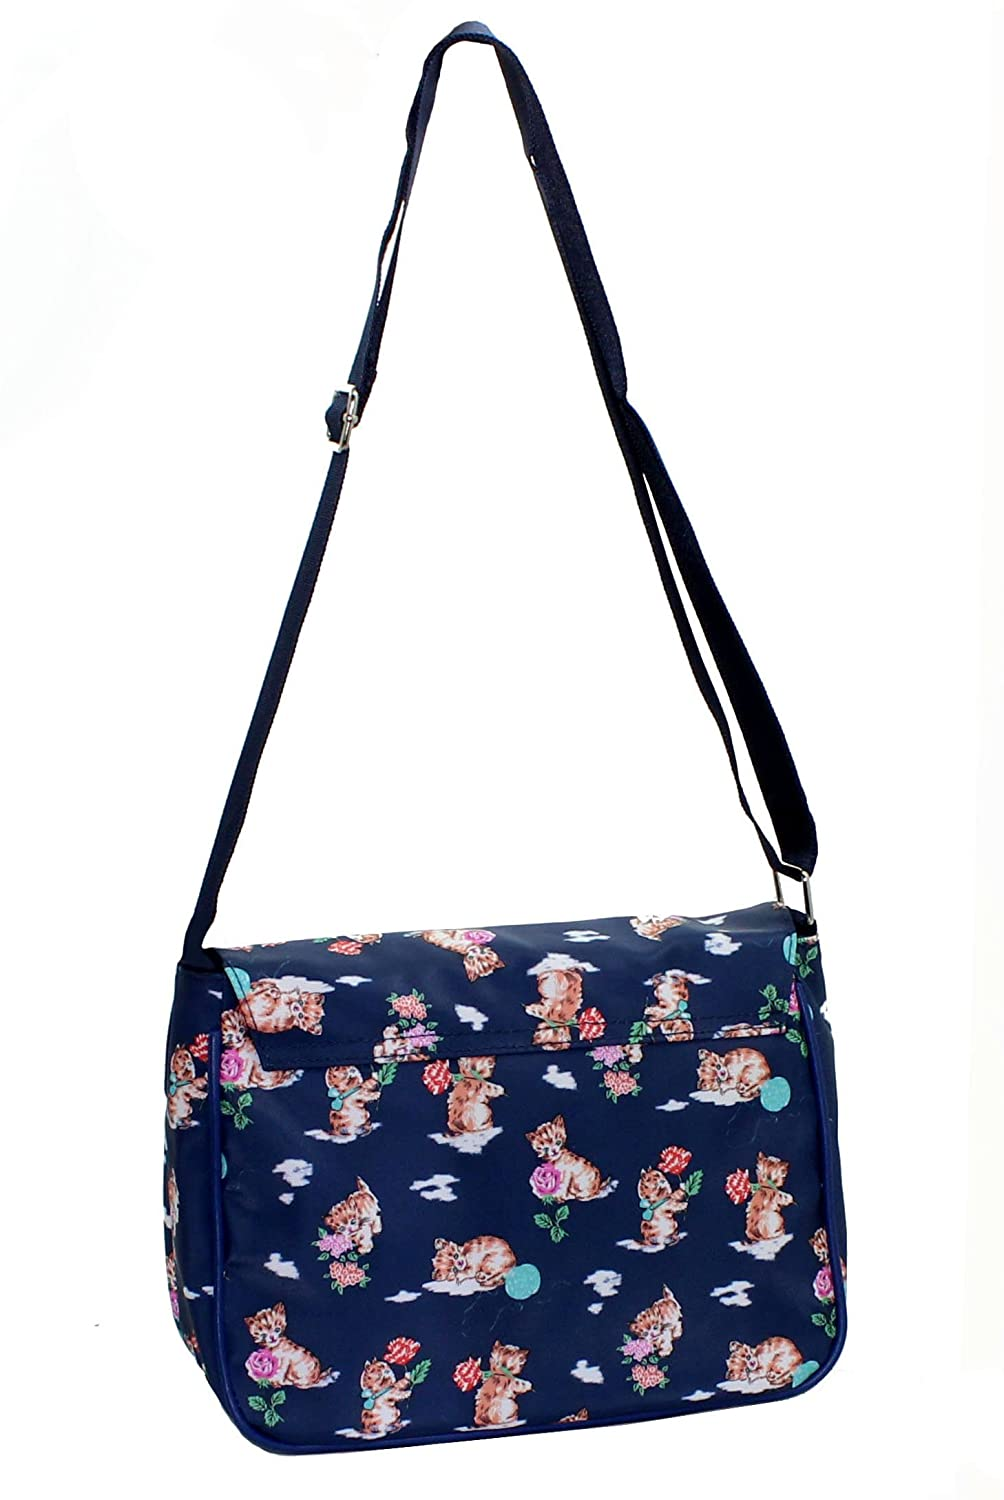 New Girls Womens Small Shoulder Bag Lovely Cat Print Fashion School Uni  Travel Messenger Satchel Flight Bag (Navy Cats Print)  Amazon.co.uk  Shoes    Bags 21fd615a408e5